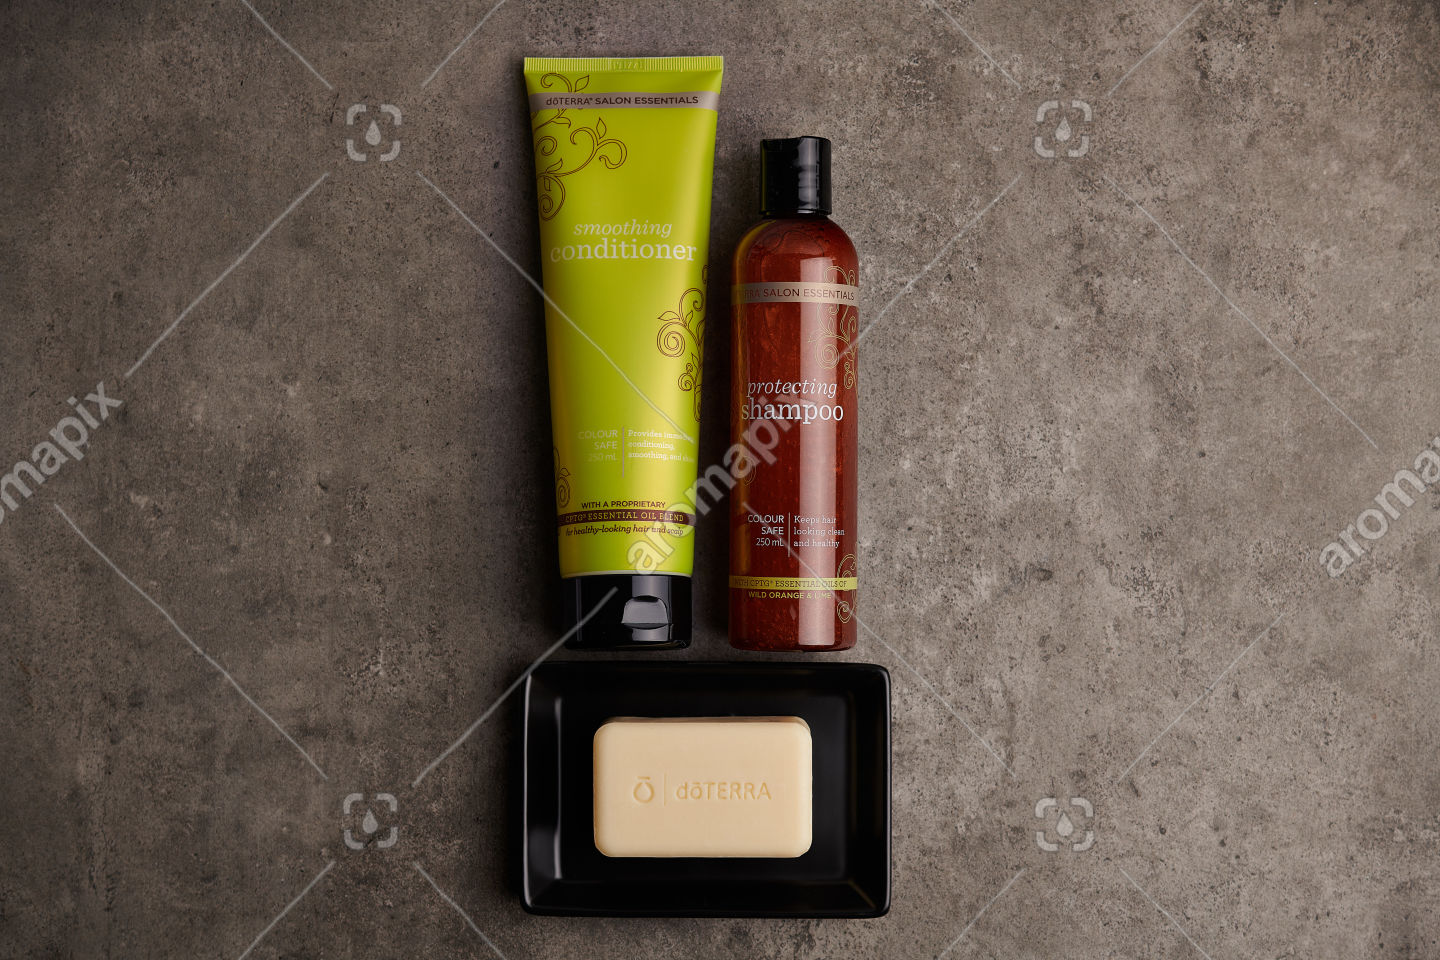 doTERRA Salon Essentials Shampoo and Conditioner on a bathroom bench